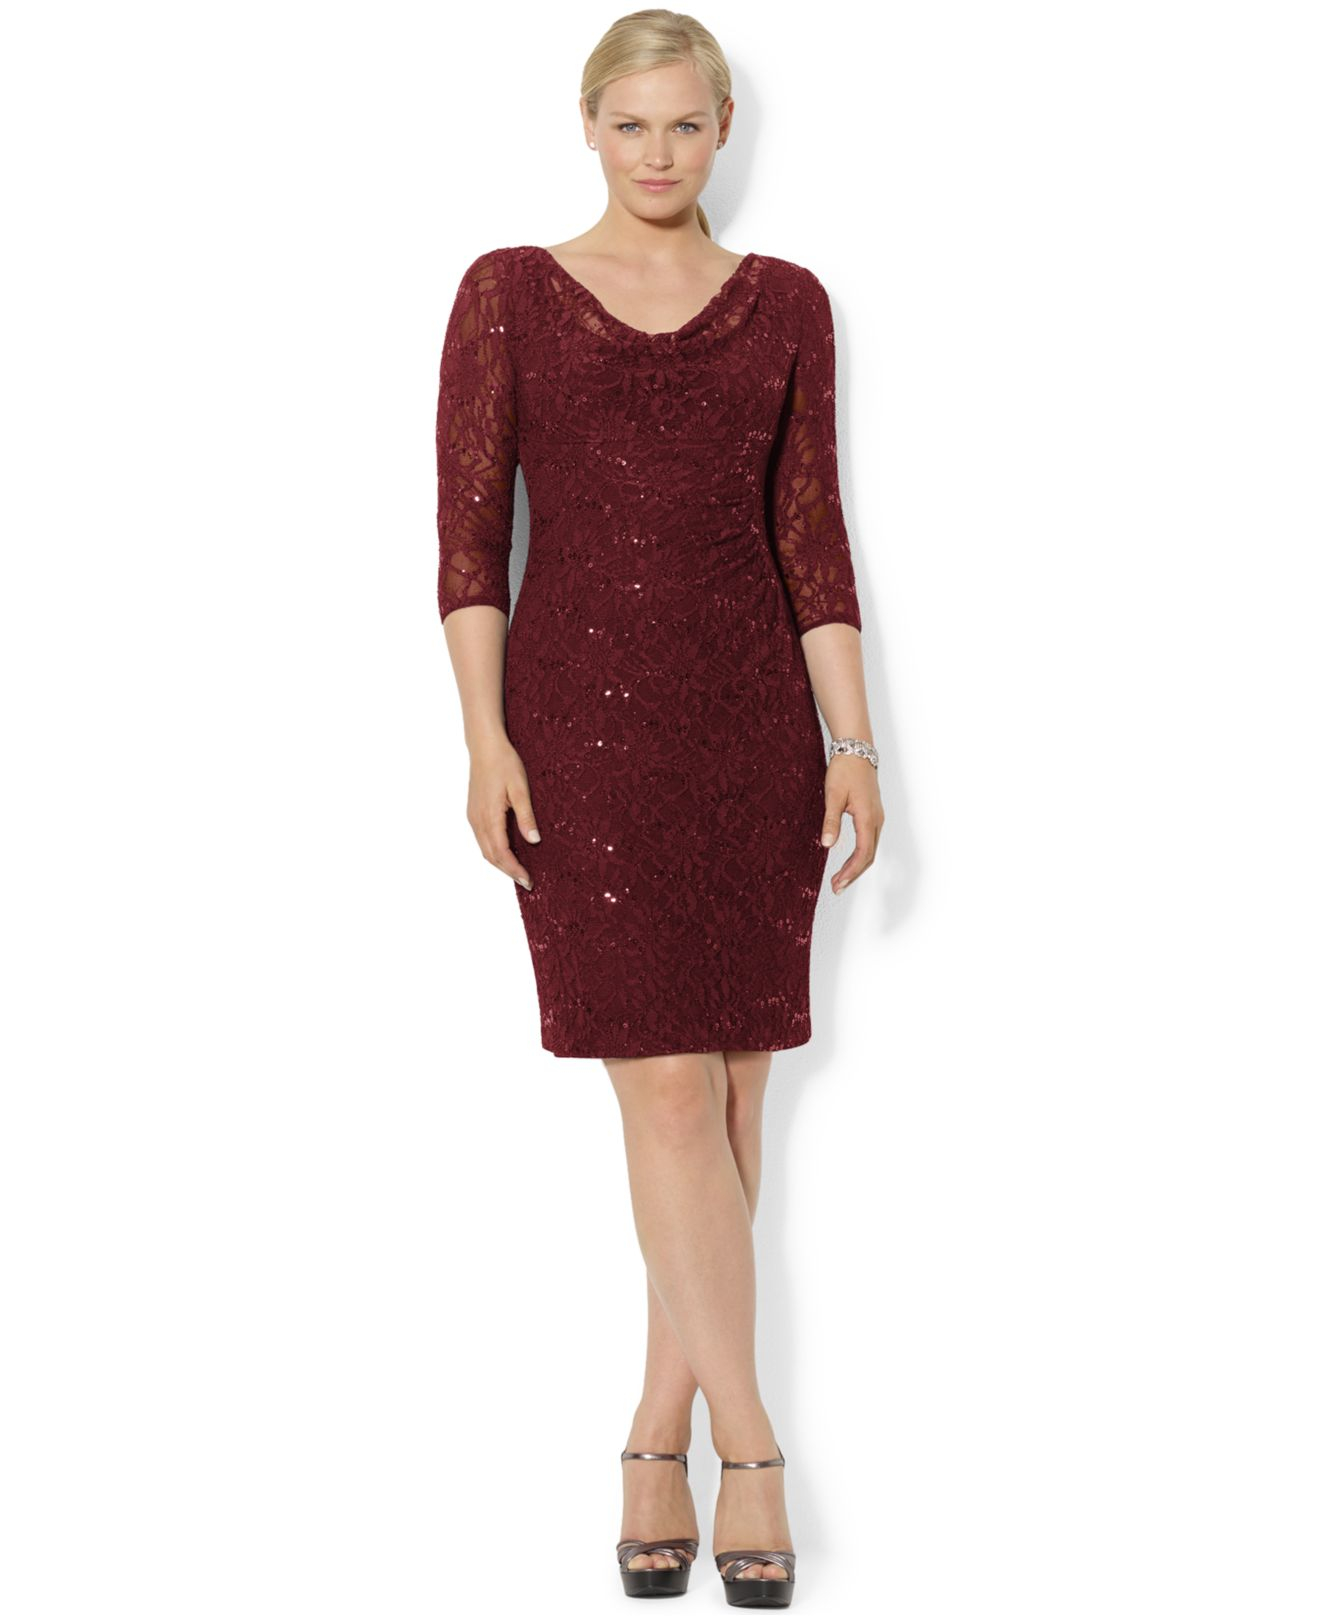 Lauren by ralph lauren Plus Size Sequin Lace Sheath Dress in Brown ...